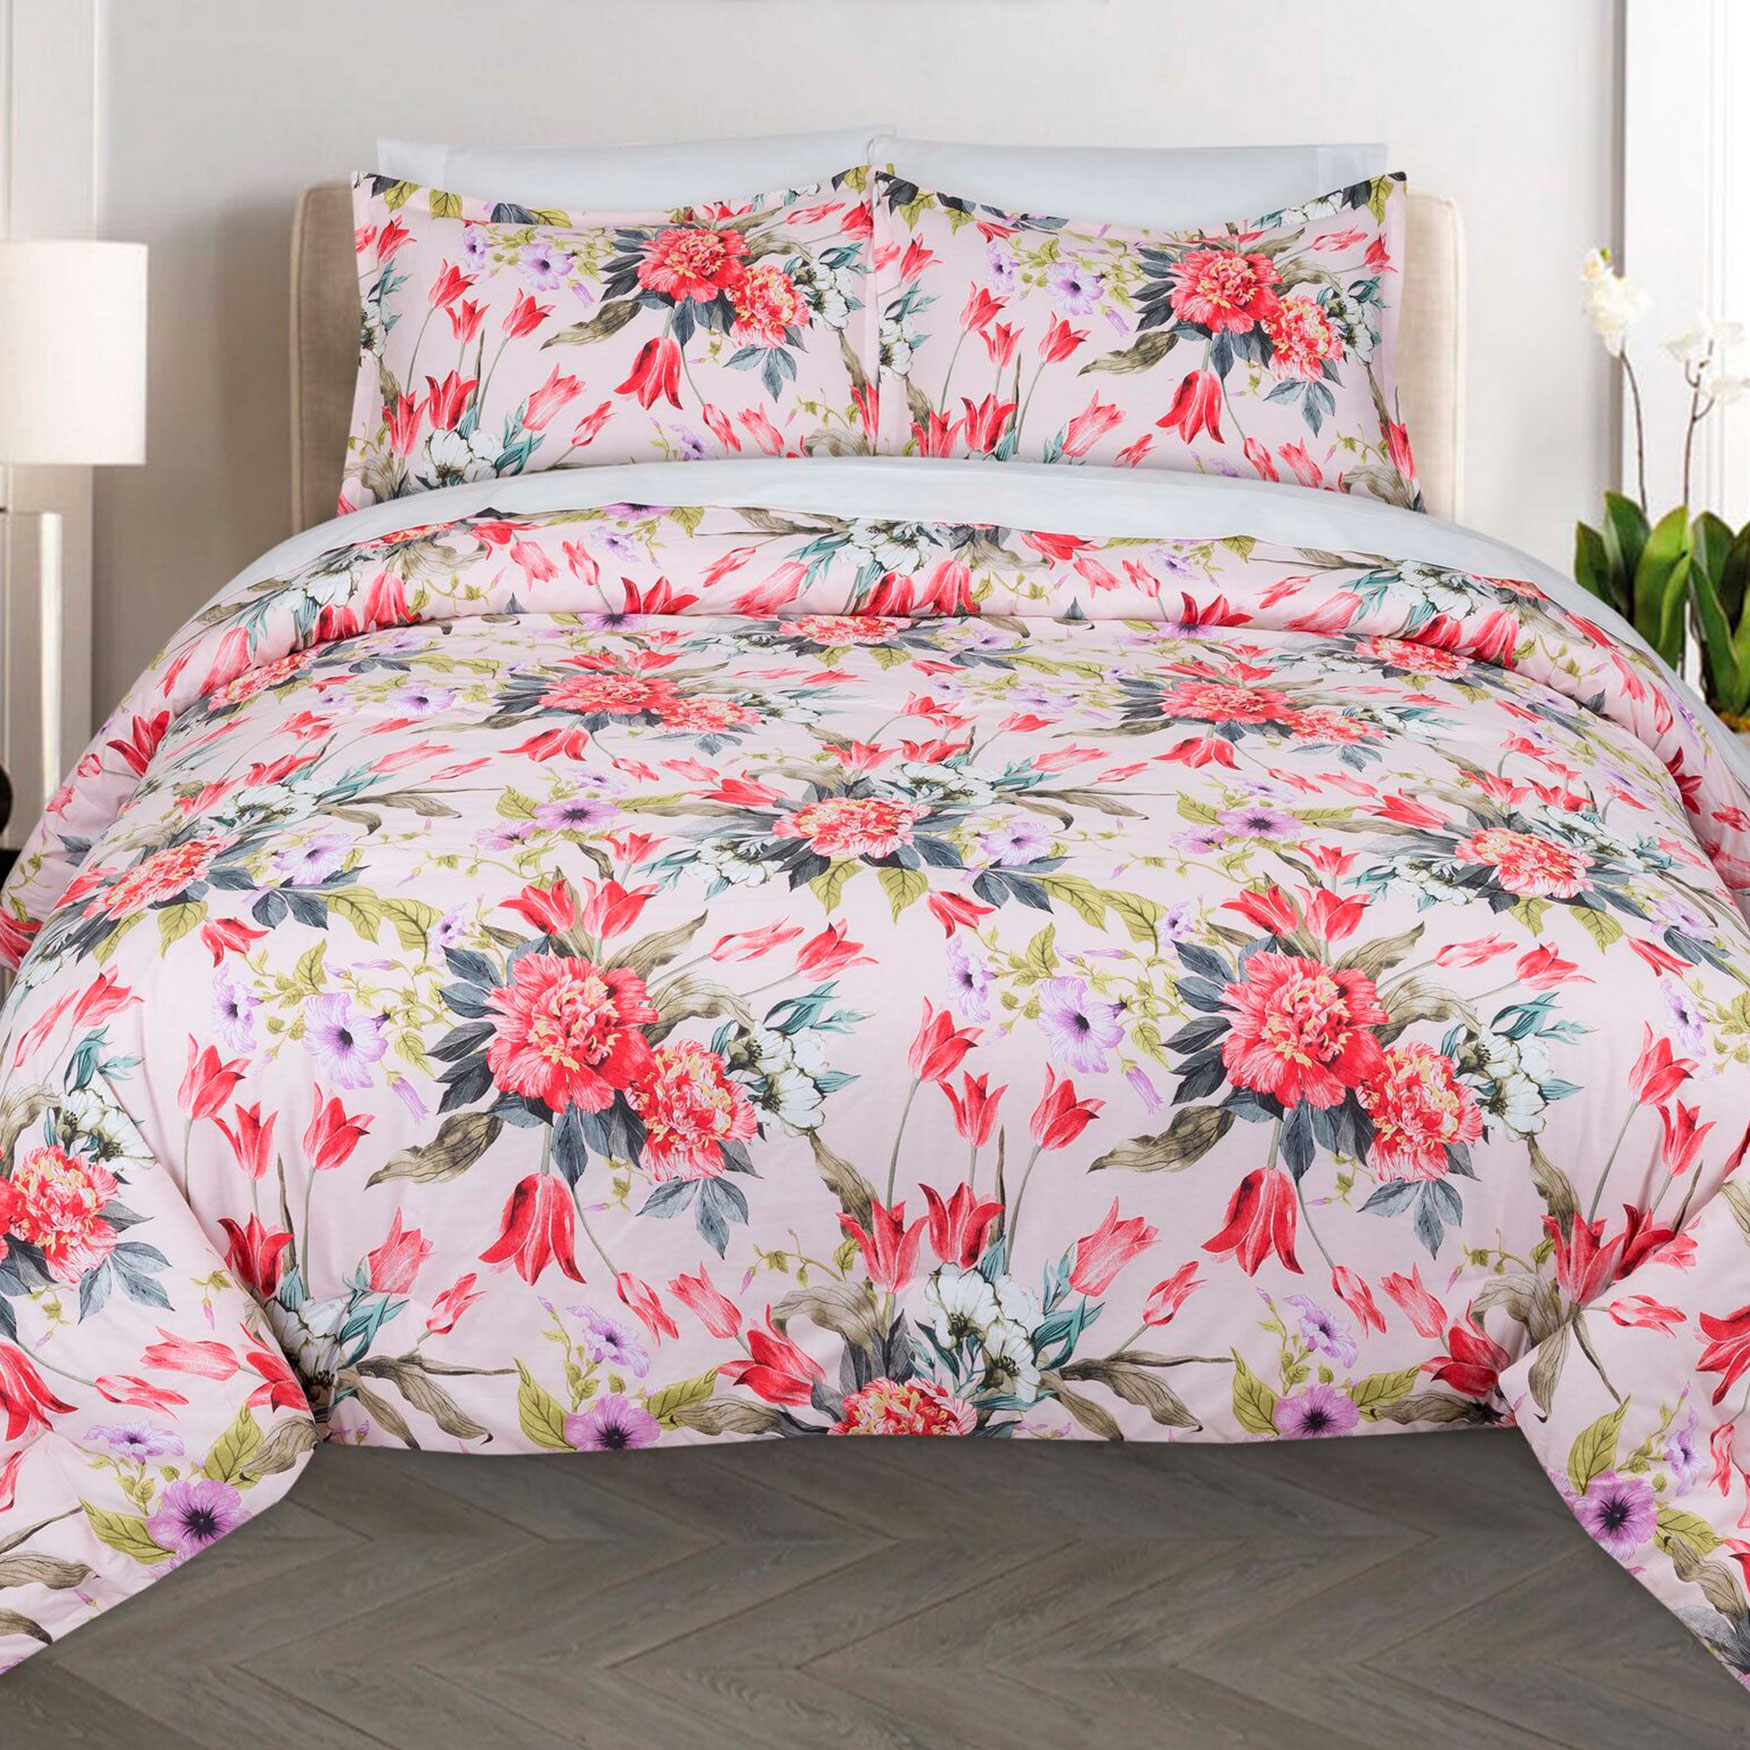 Bouquet Comforter Set,